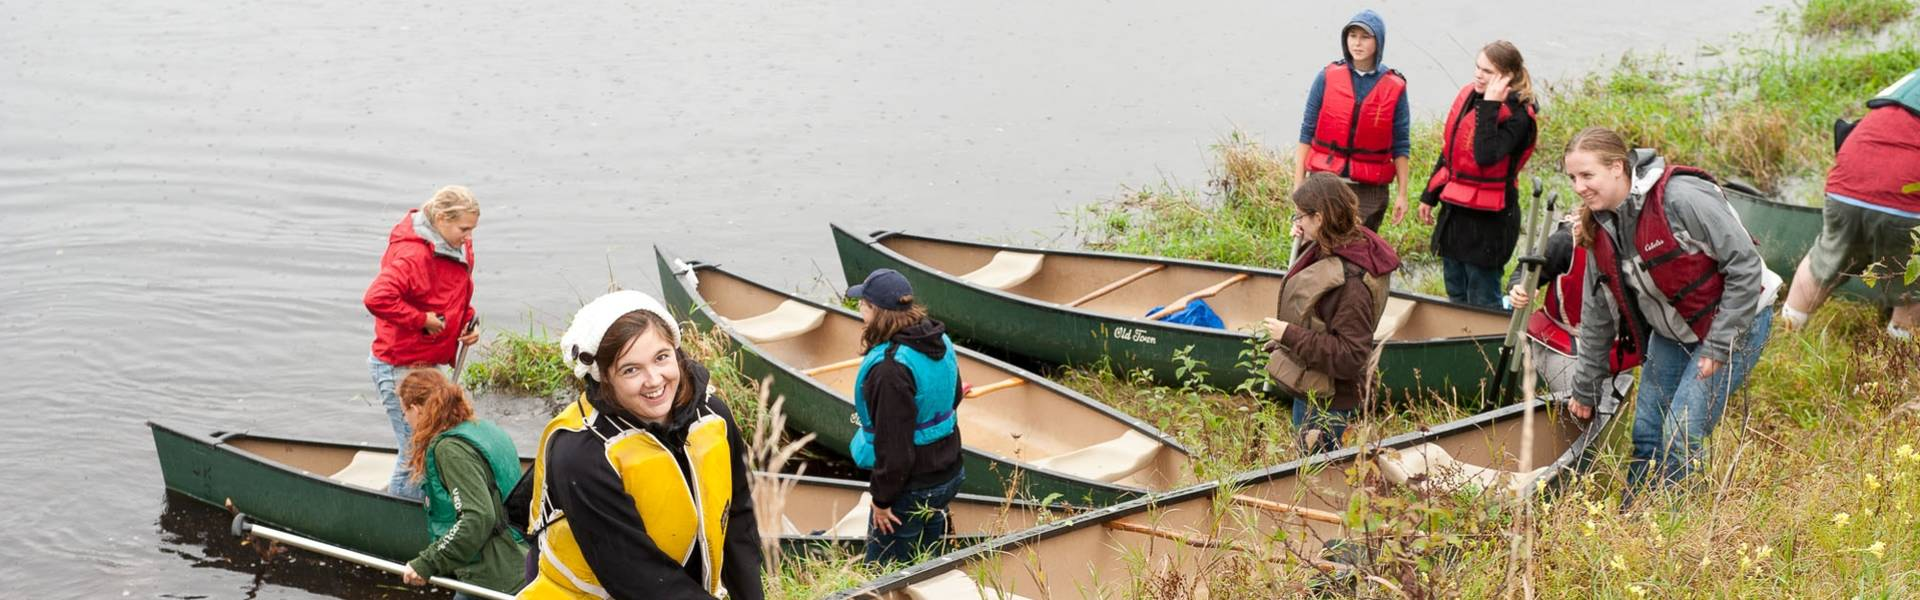 Geography students taking canoes out for research.